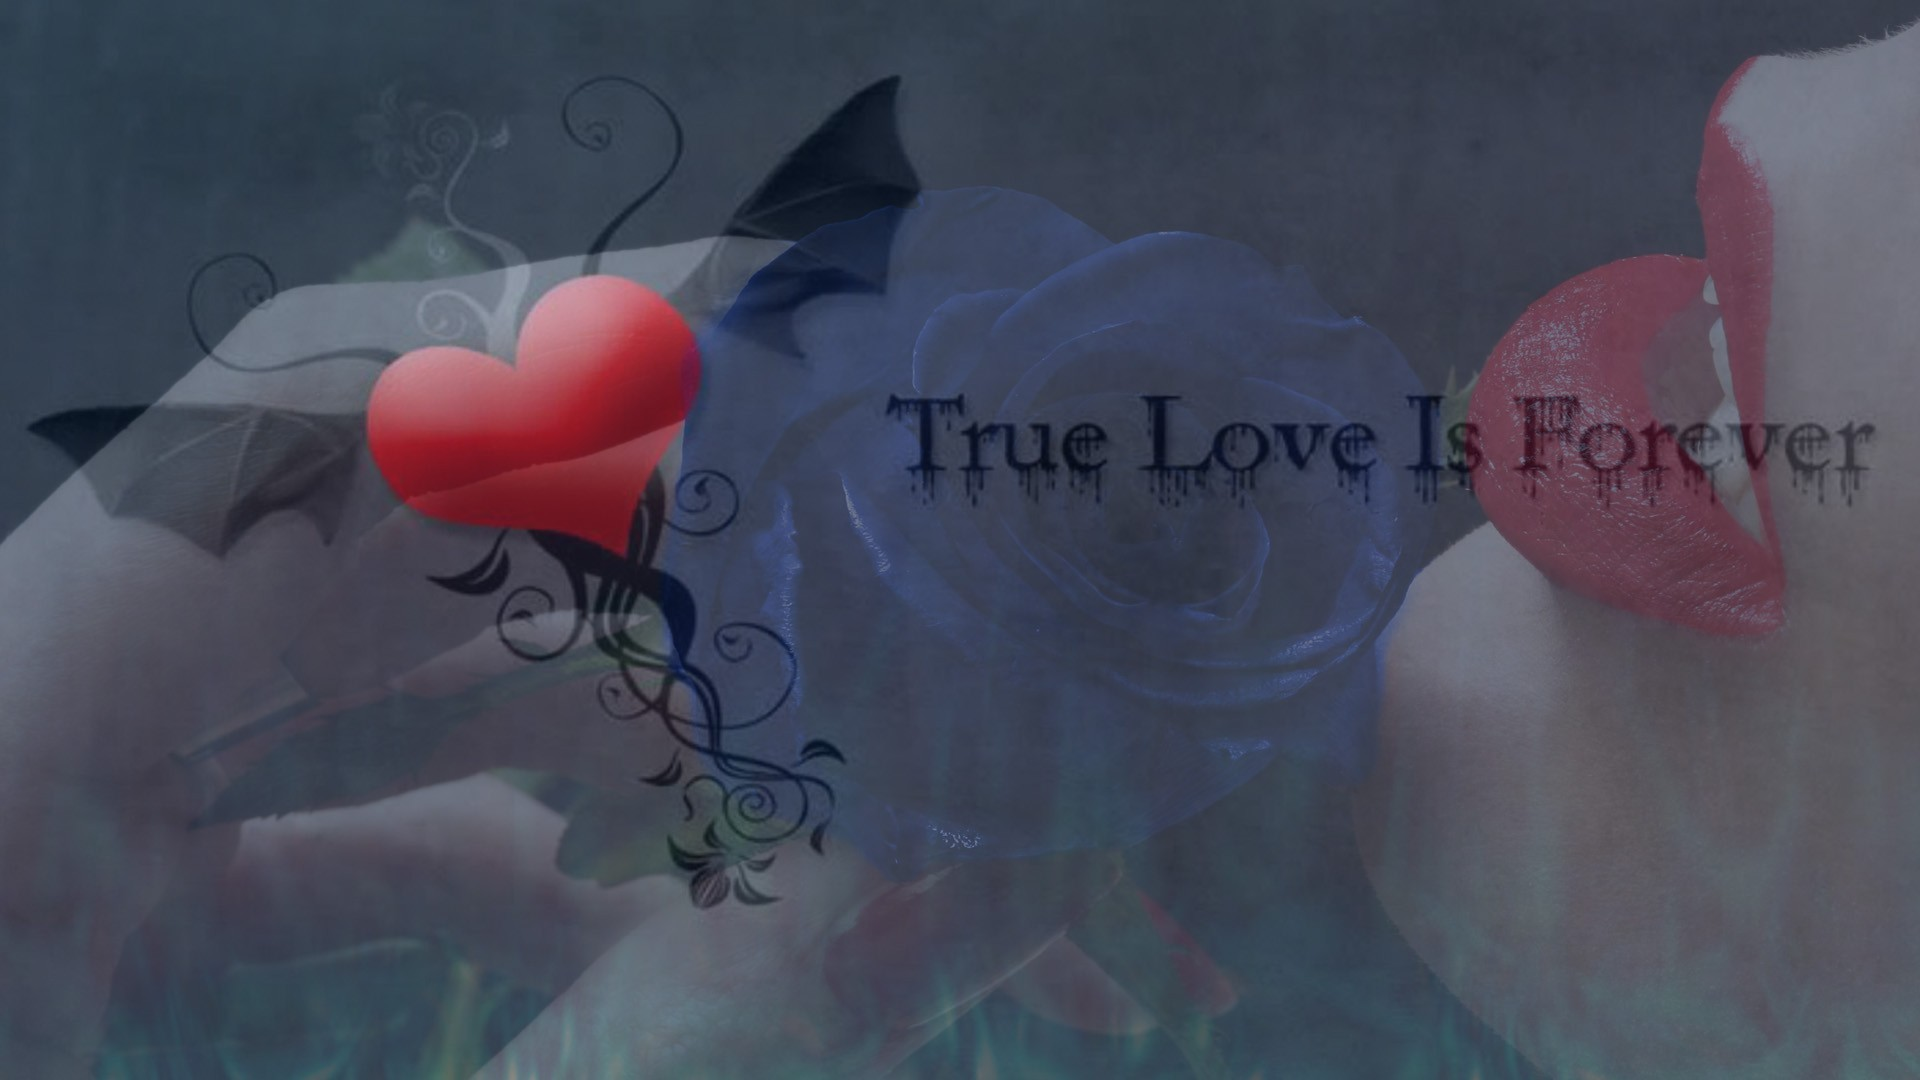 True love is forever wallpaper AllWallpaper.in #5616 Pc en